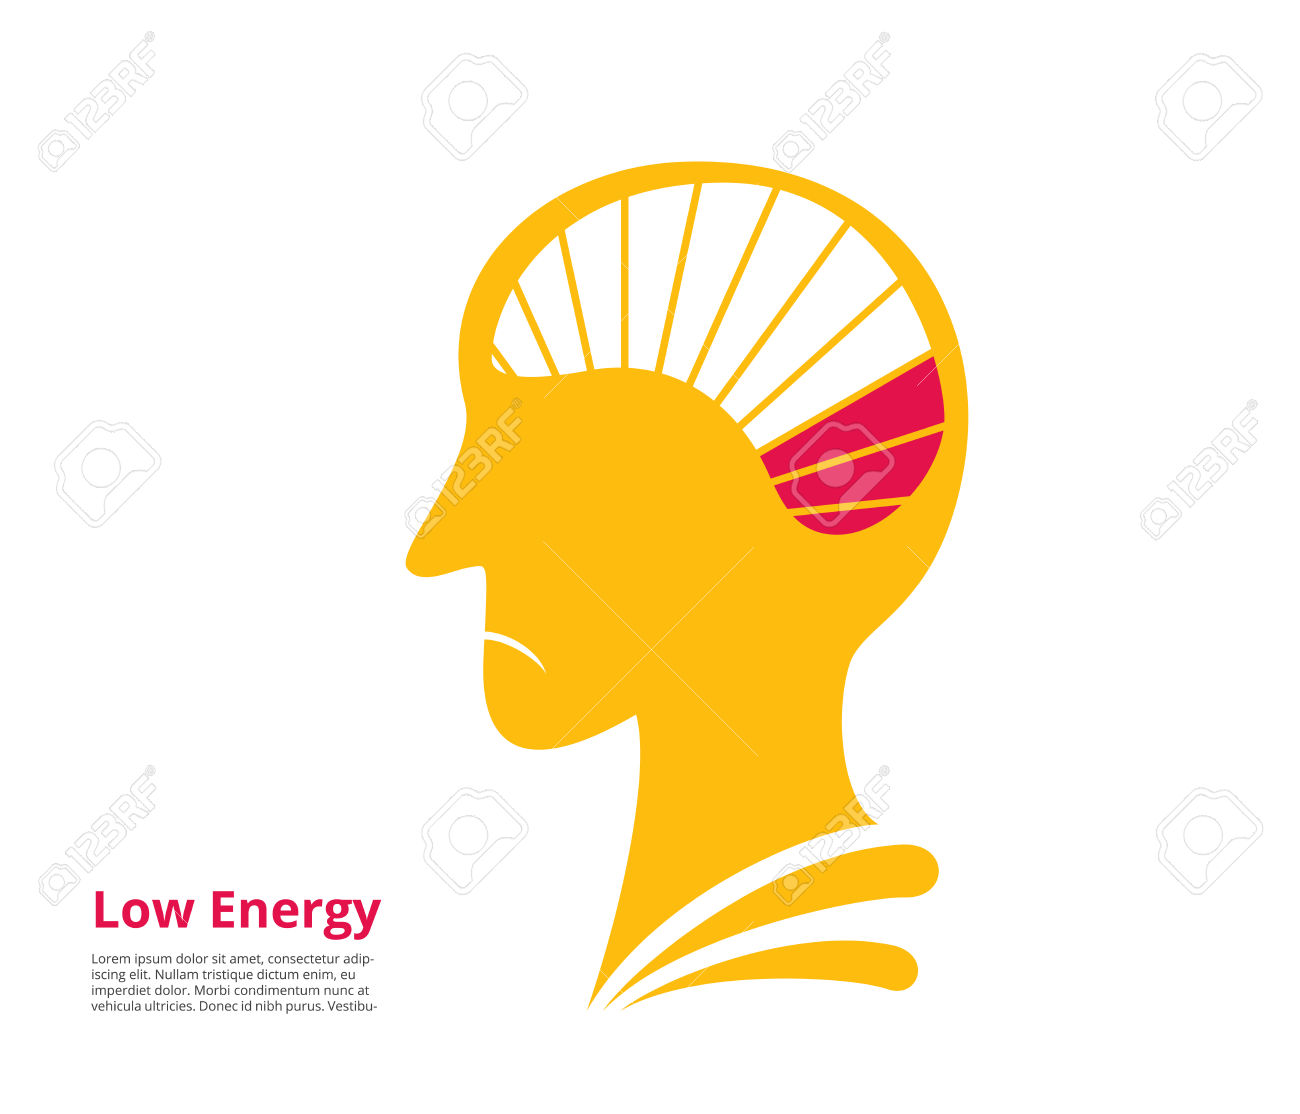 Low Energy, Low Power Of Brain. Vector Illustration Royalty Free.